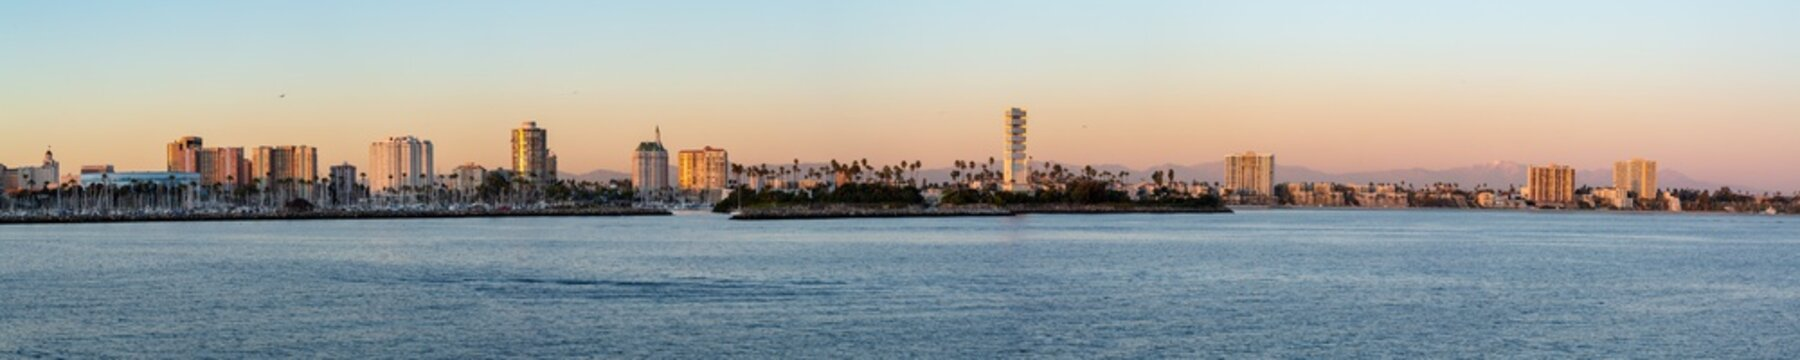 Panorama of Long Beach harbor as seen from a boat at sunset.